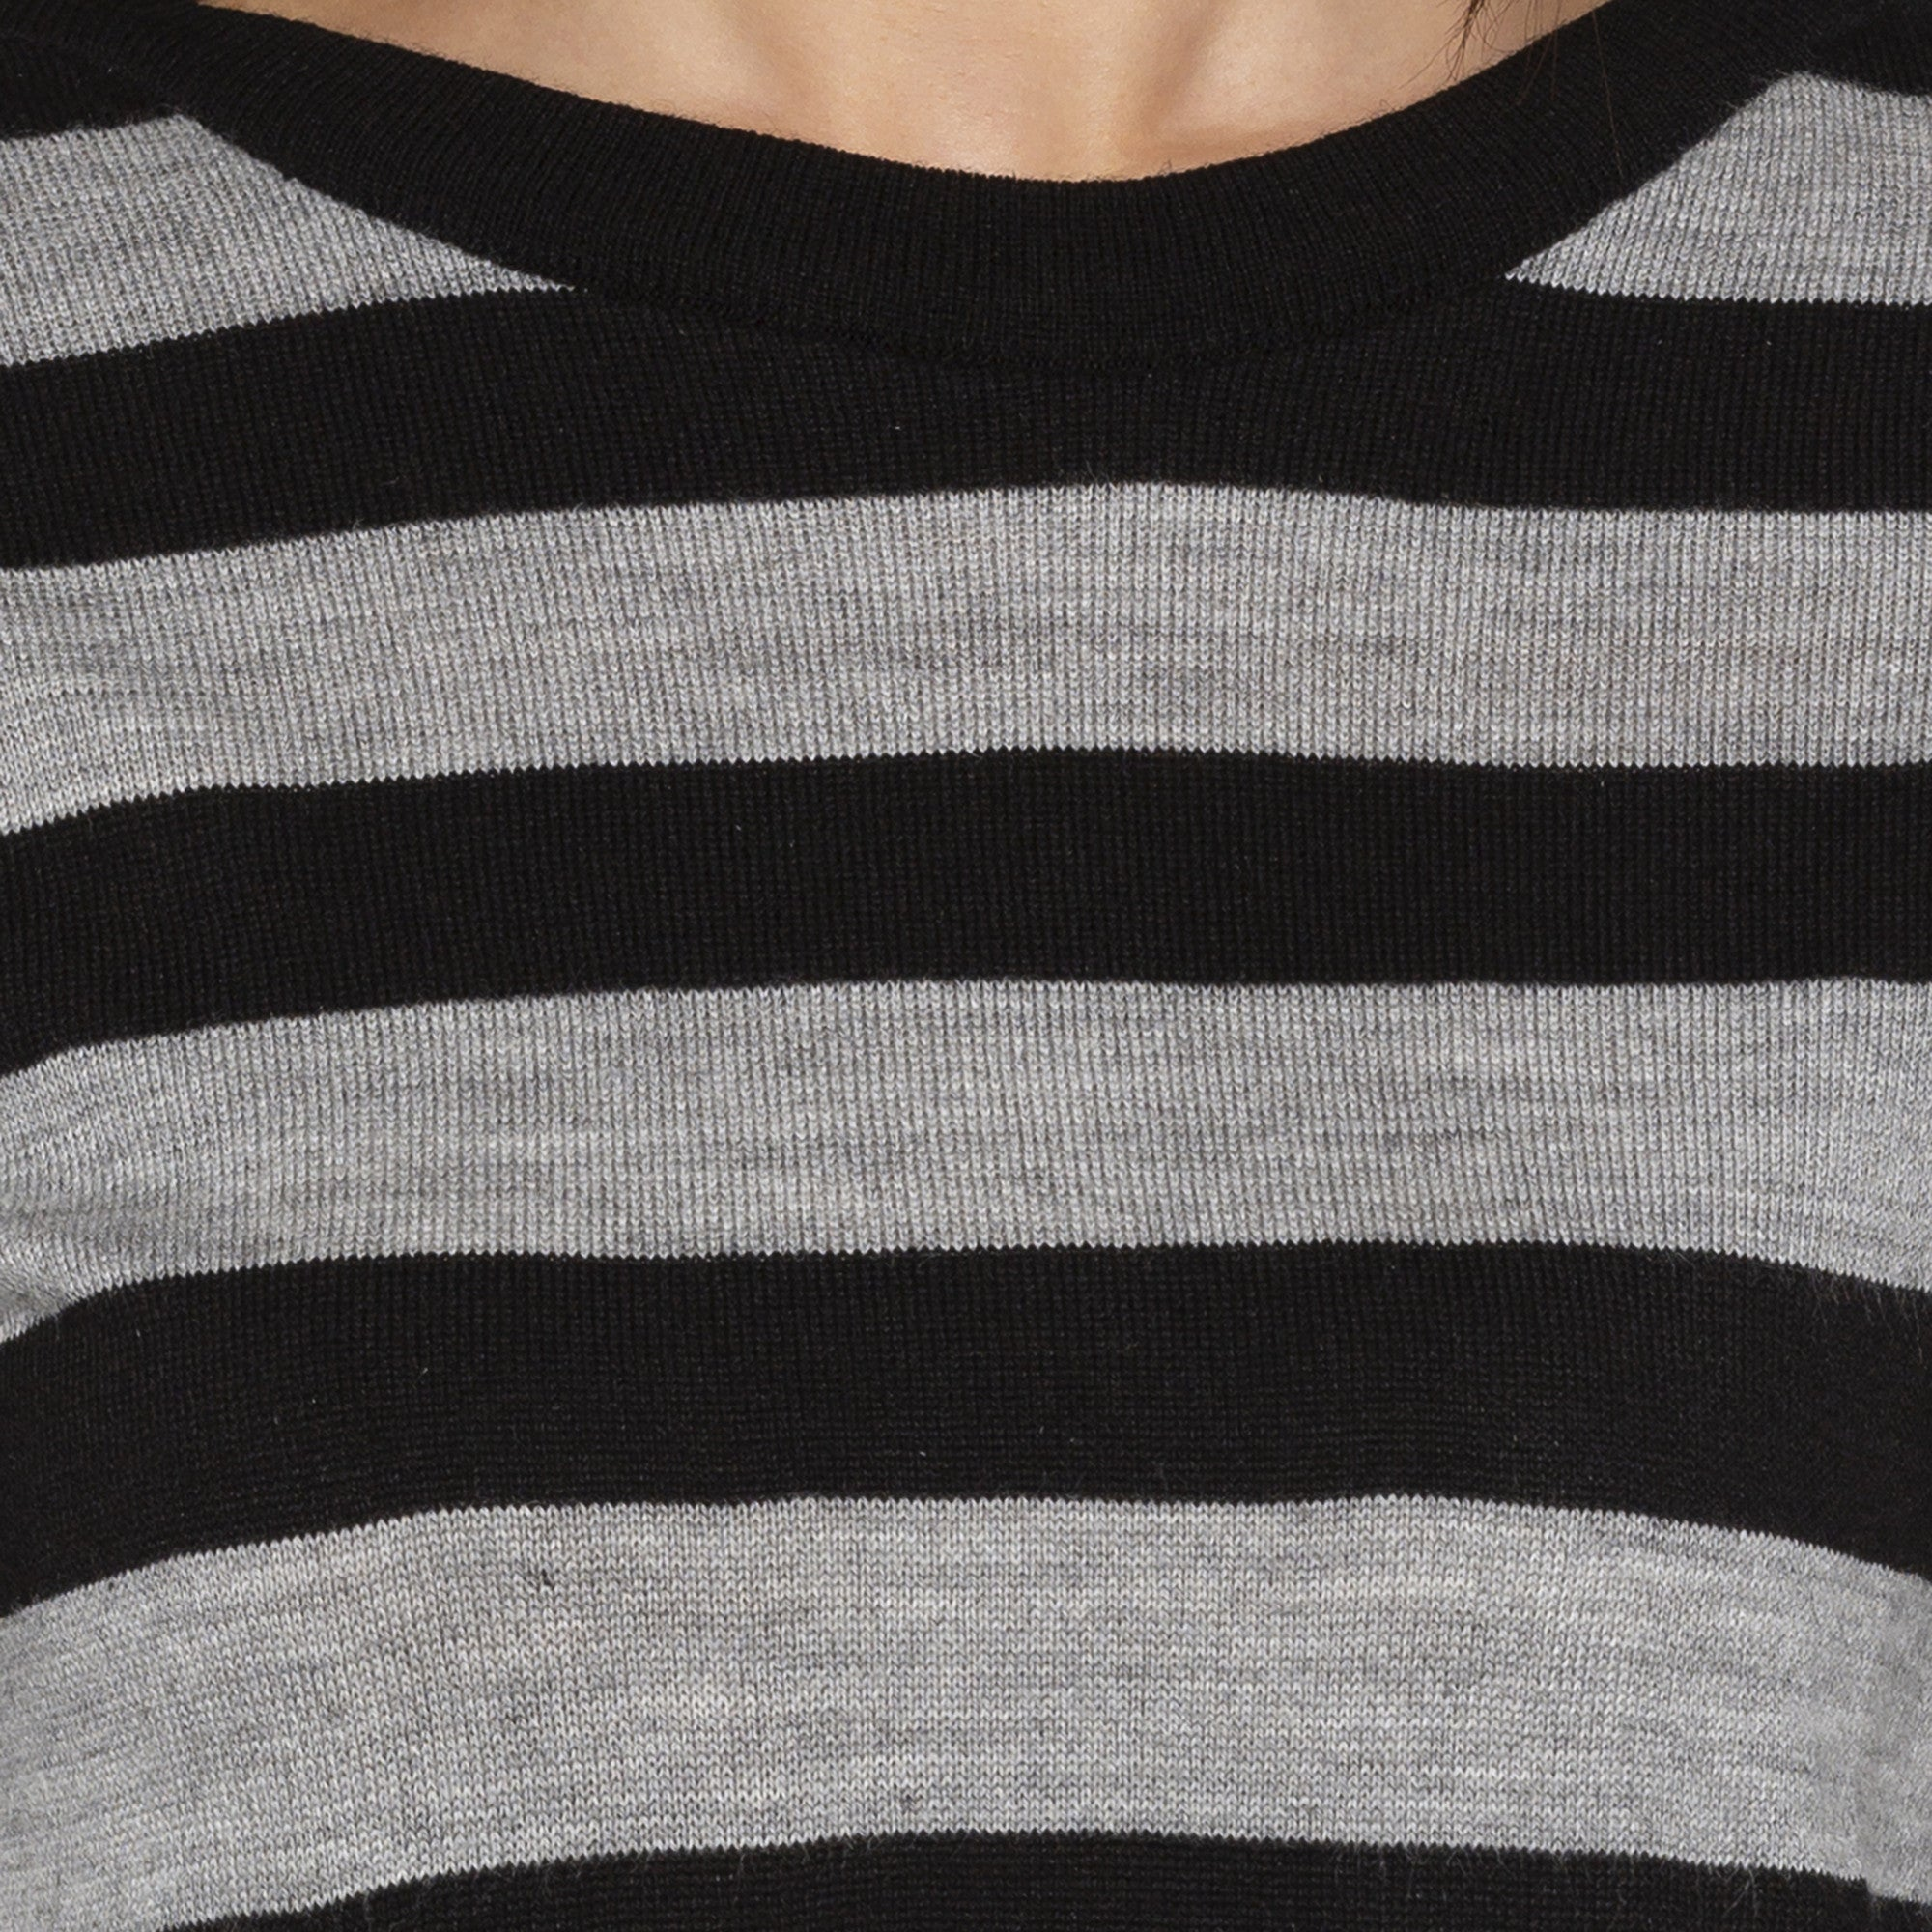 Casual Black Color Striped Regular Fit Tops-5